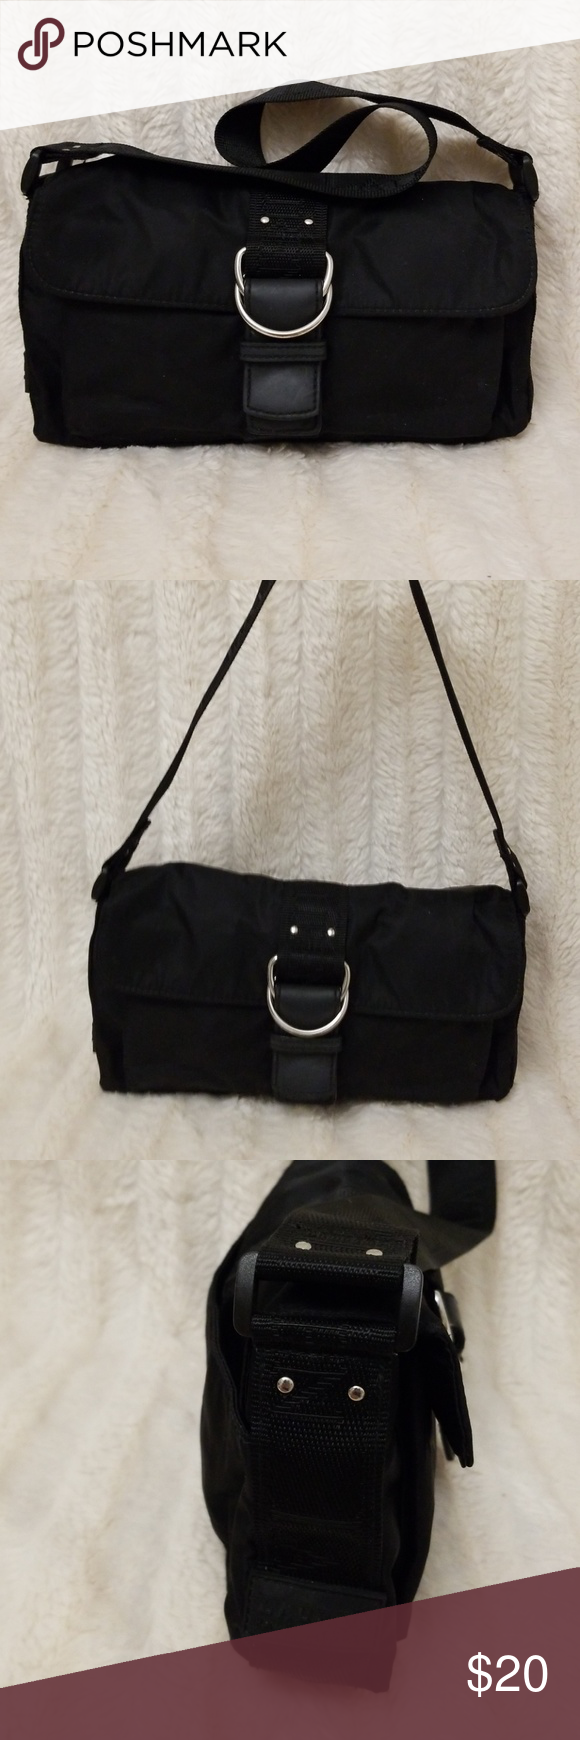 5e48a80f78 Ralph Lauren nylon shoulder bag 2 compartment with one zipper compartment black  nylon bag. Good